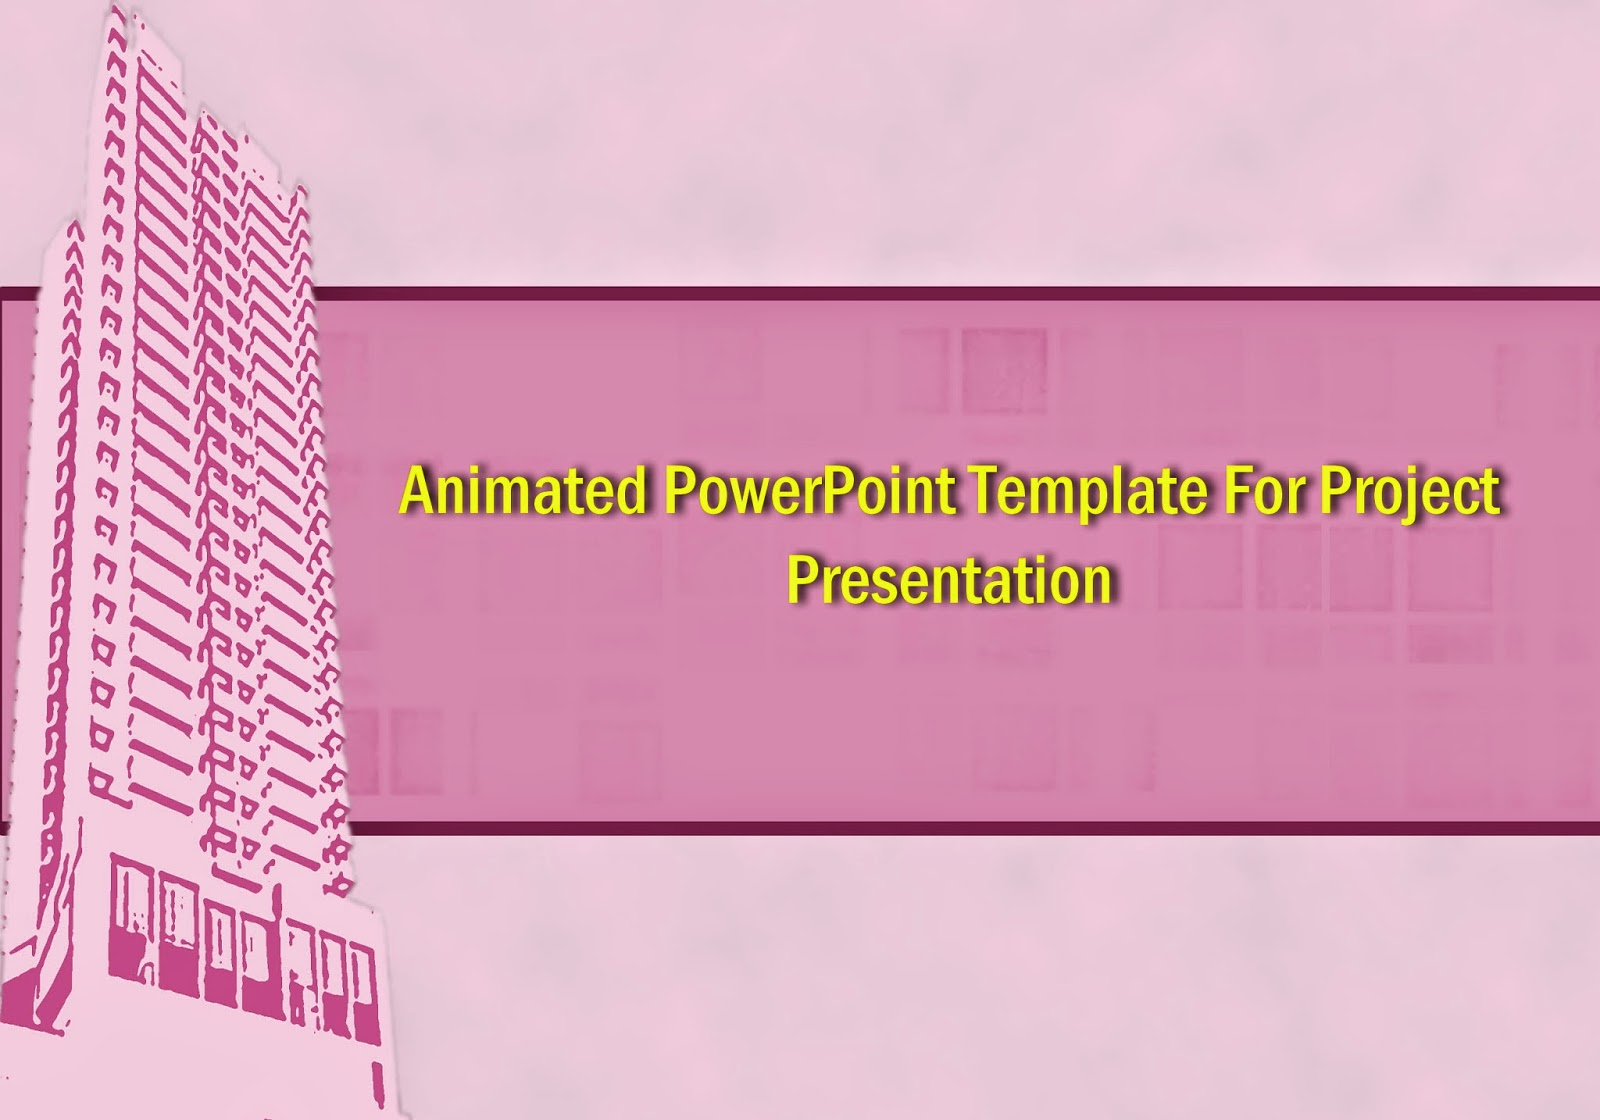 Professional animated powerpoint templates free download for animated powerpoint templates for project presentation alramifo Image collections